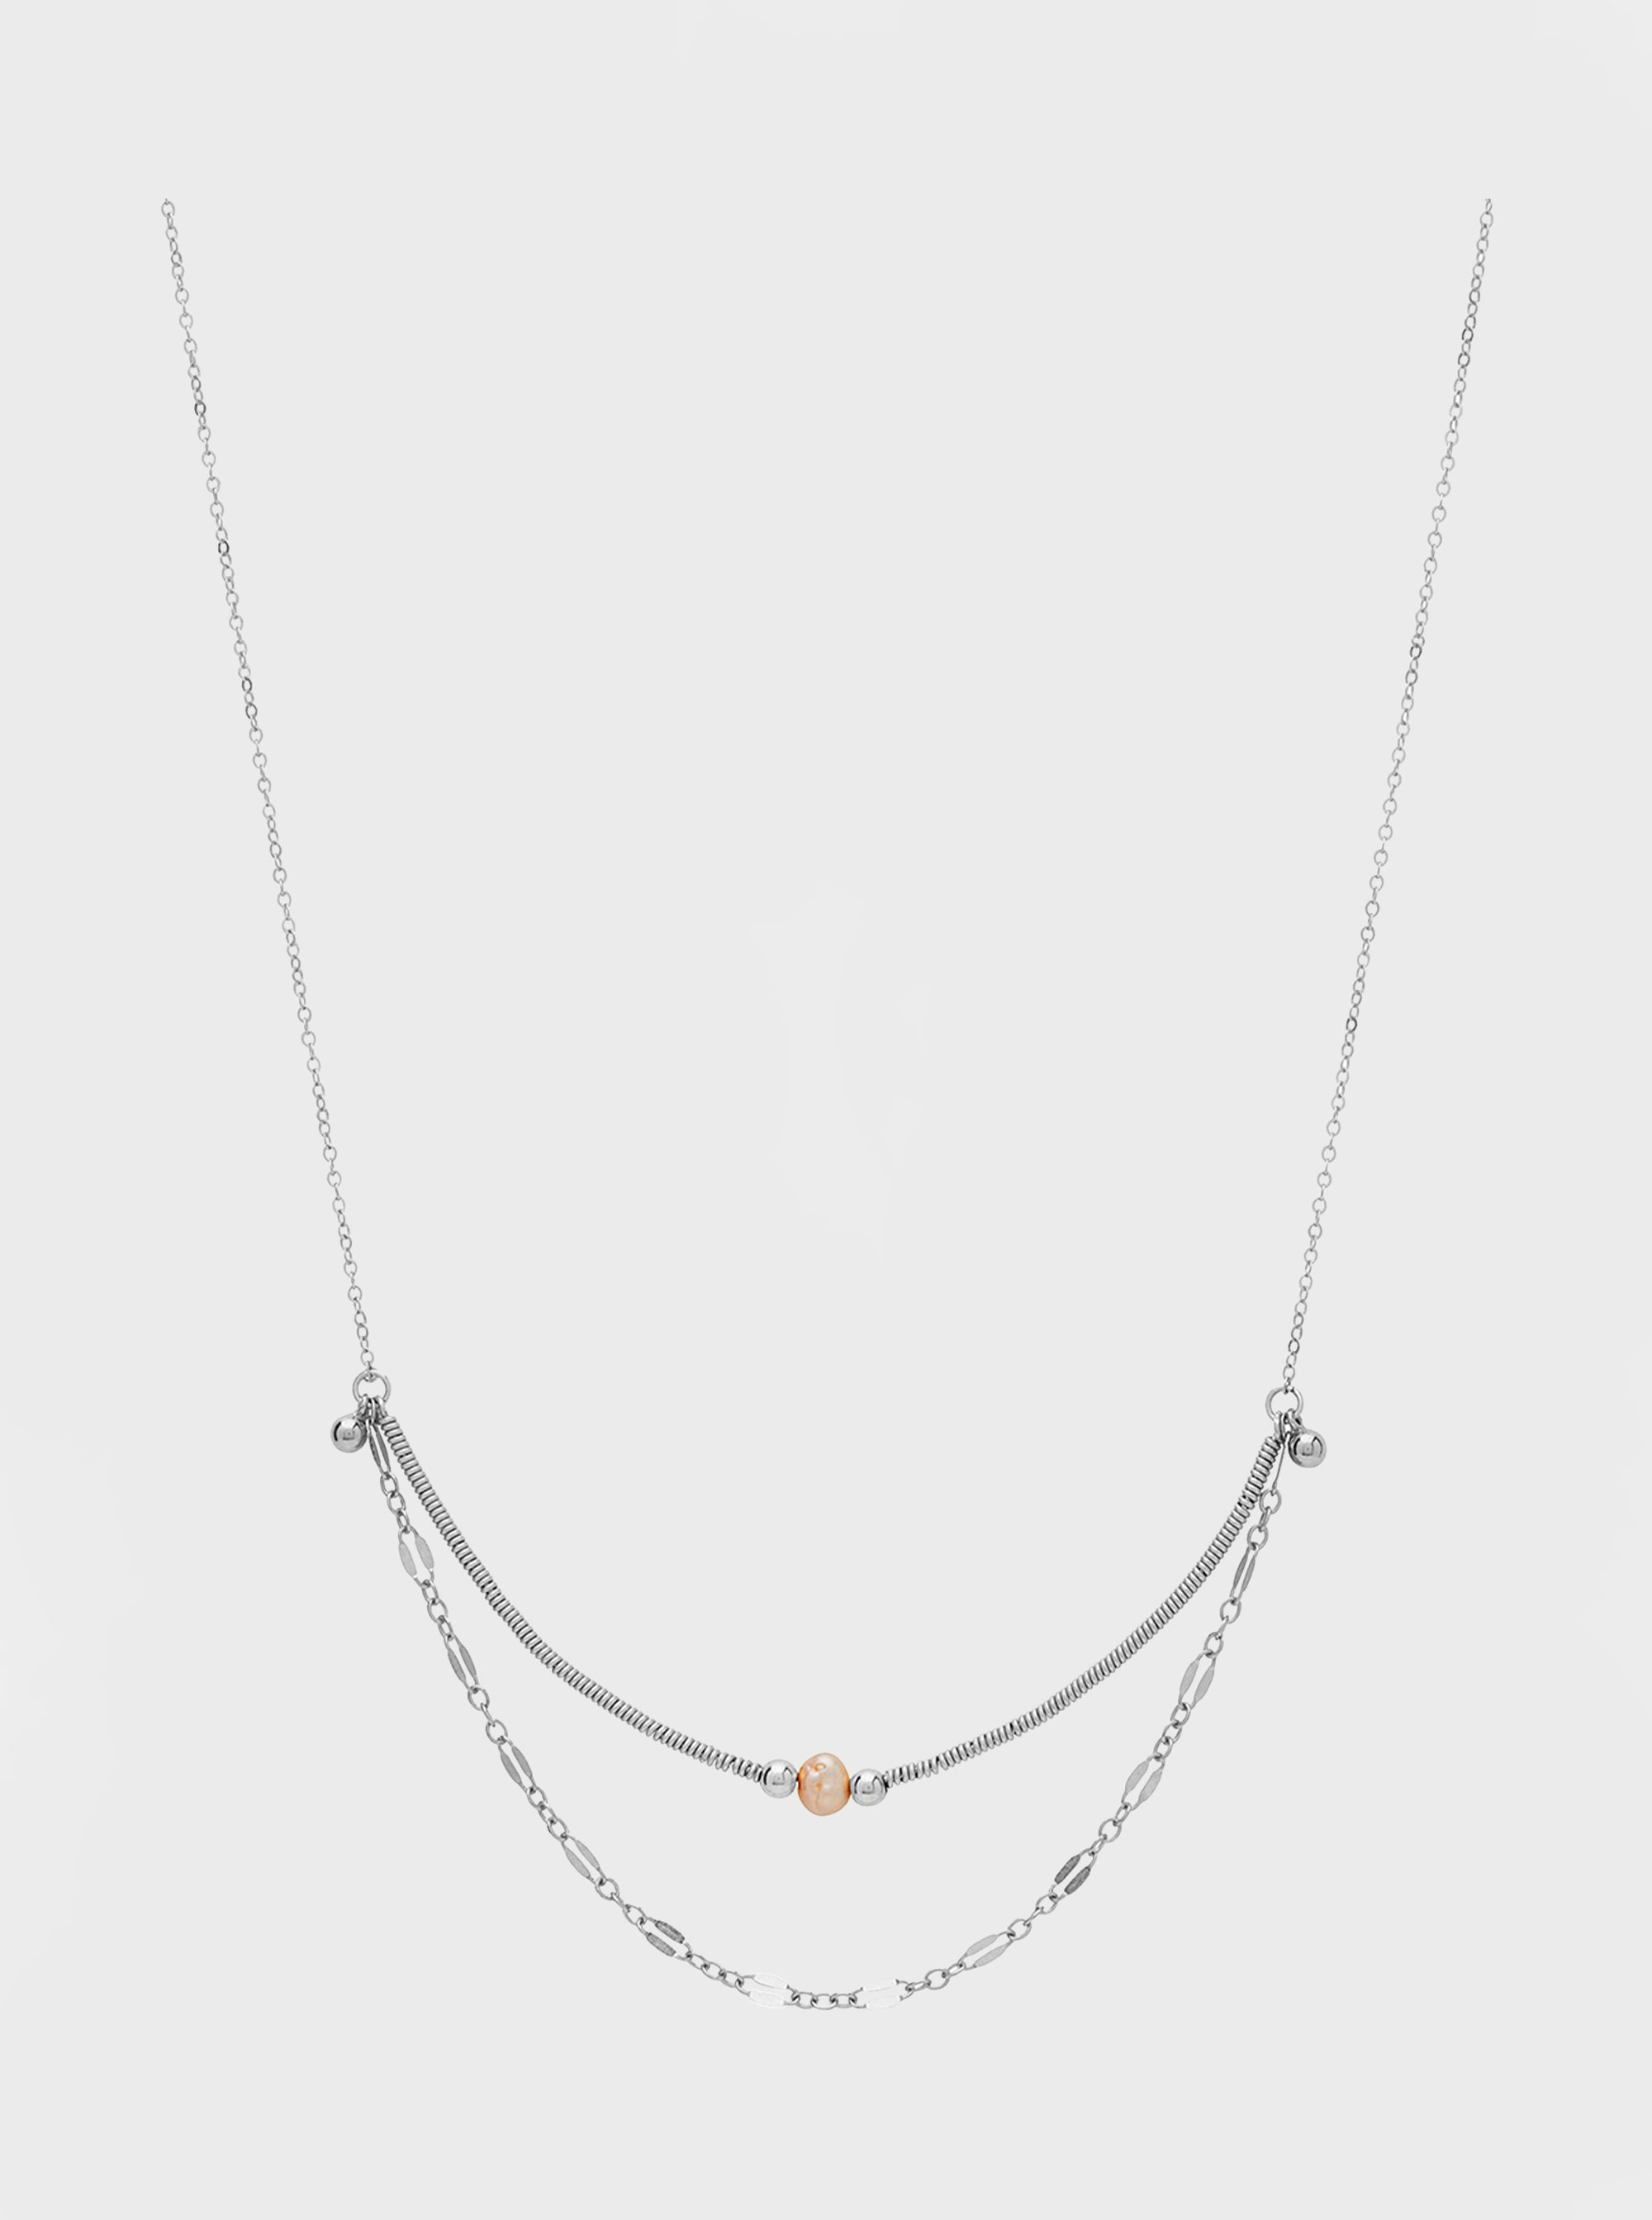 Cala Deia Necklace